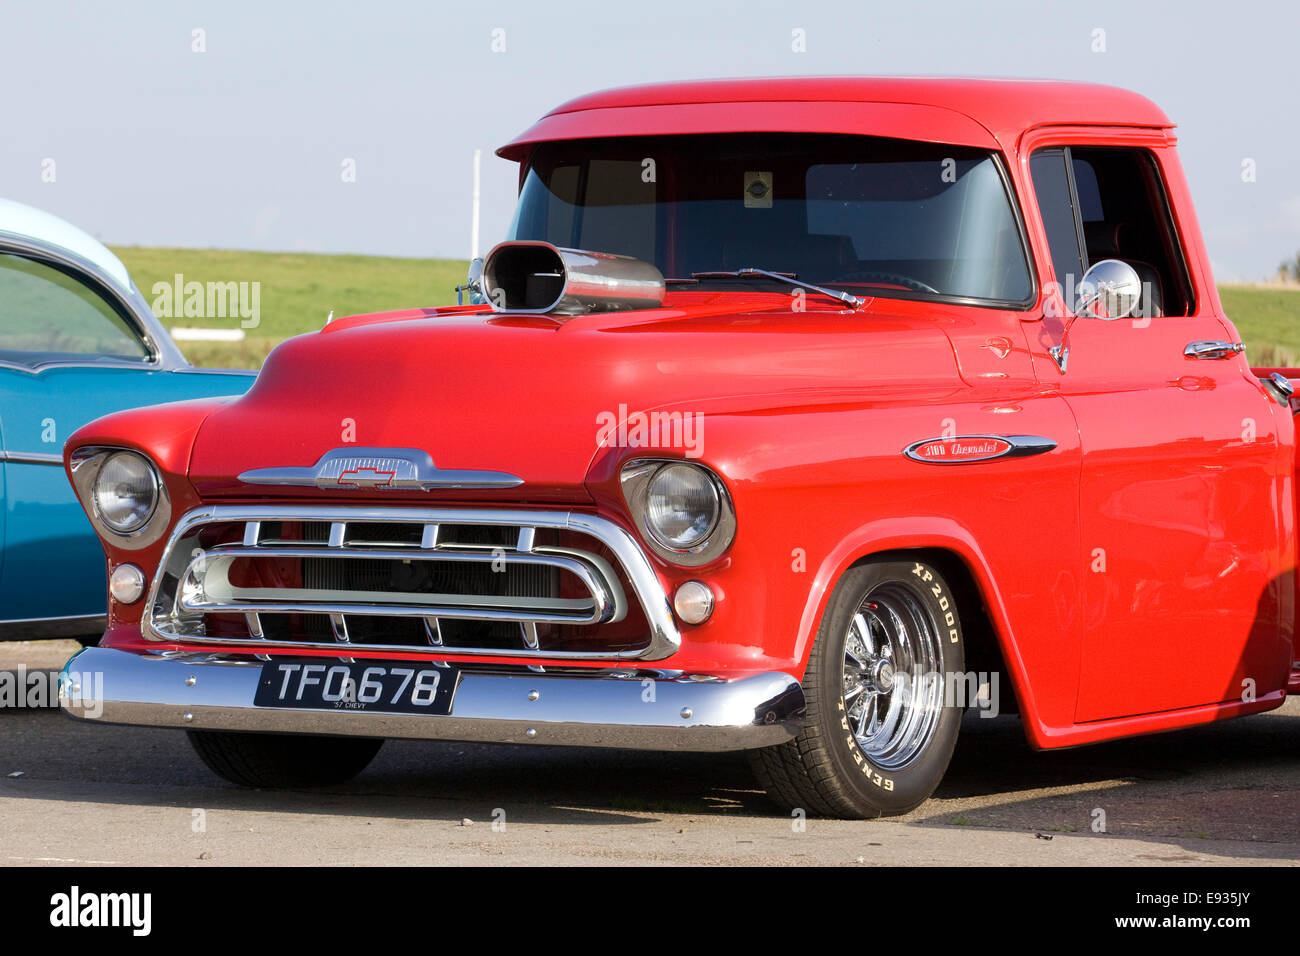 hight resolution of 1957 chevy pickup truck 350 chevrolet stock image